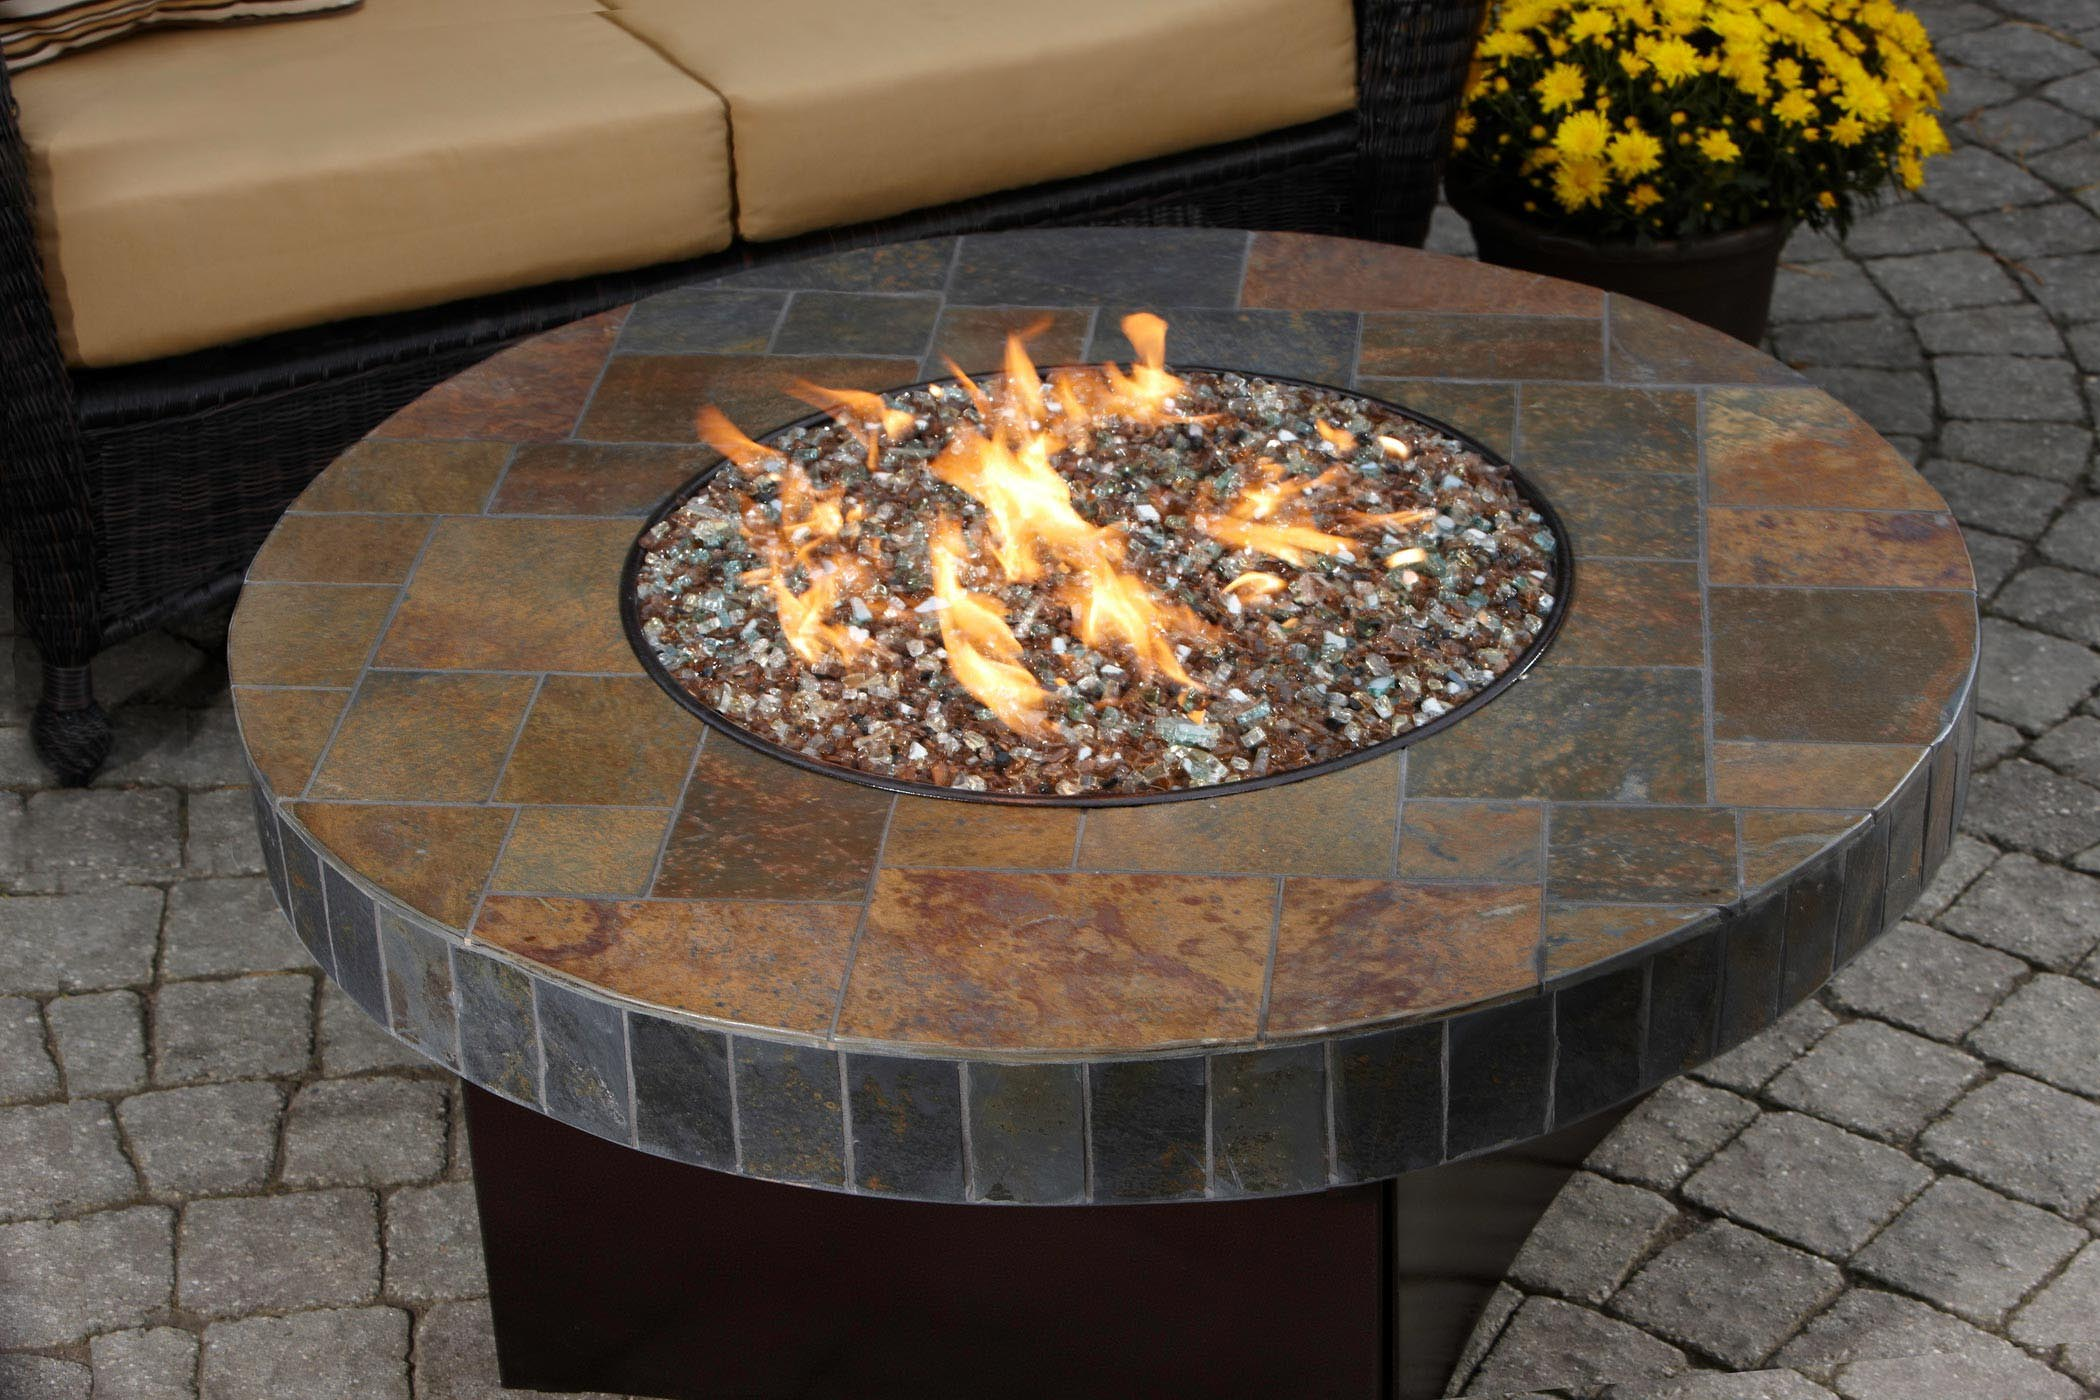 Gas Patio Fire Pit Table Everyone Needs a Small Fire Pit | Fire Pit Design Ideas